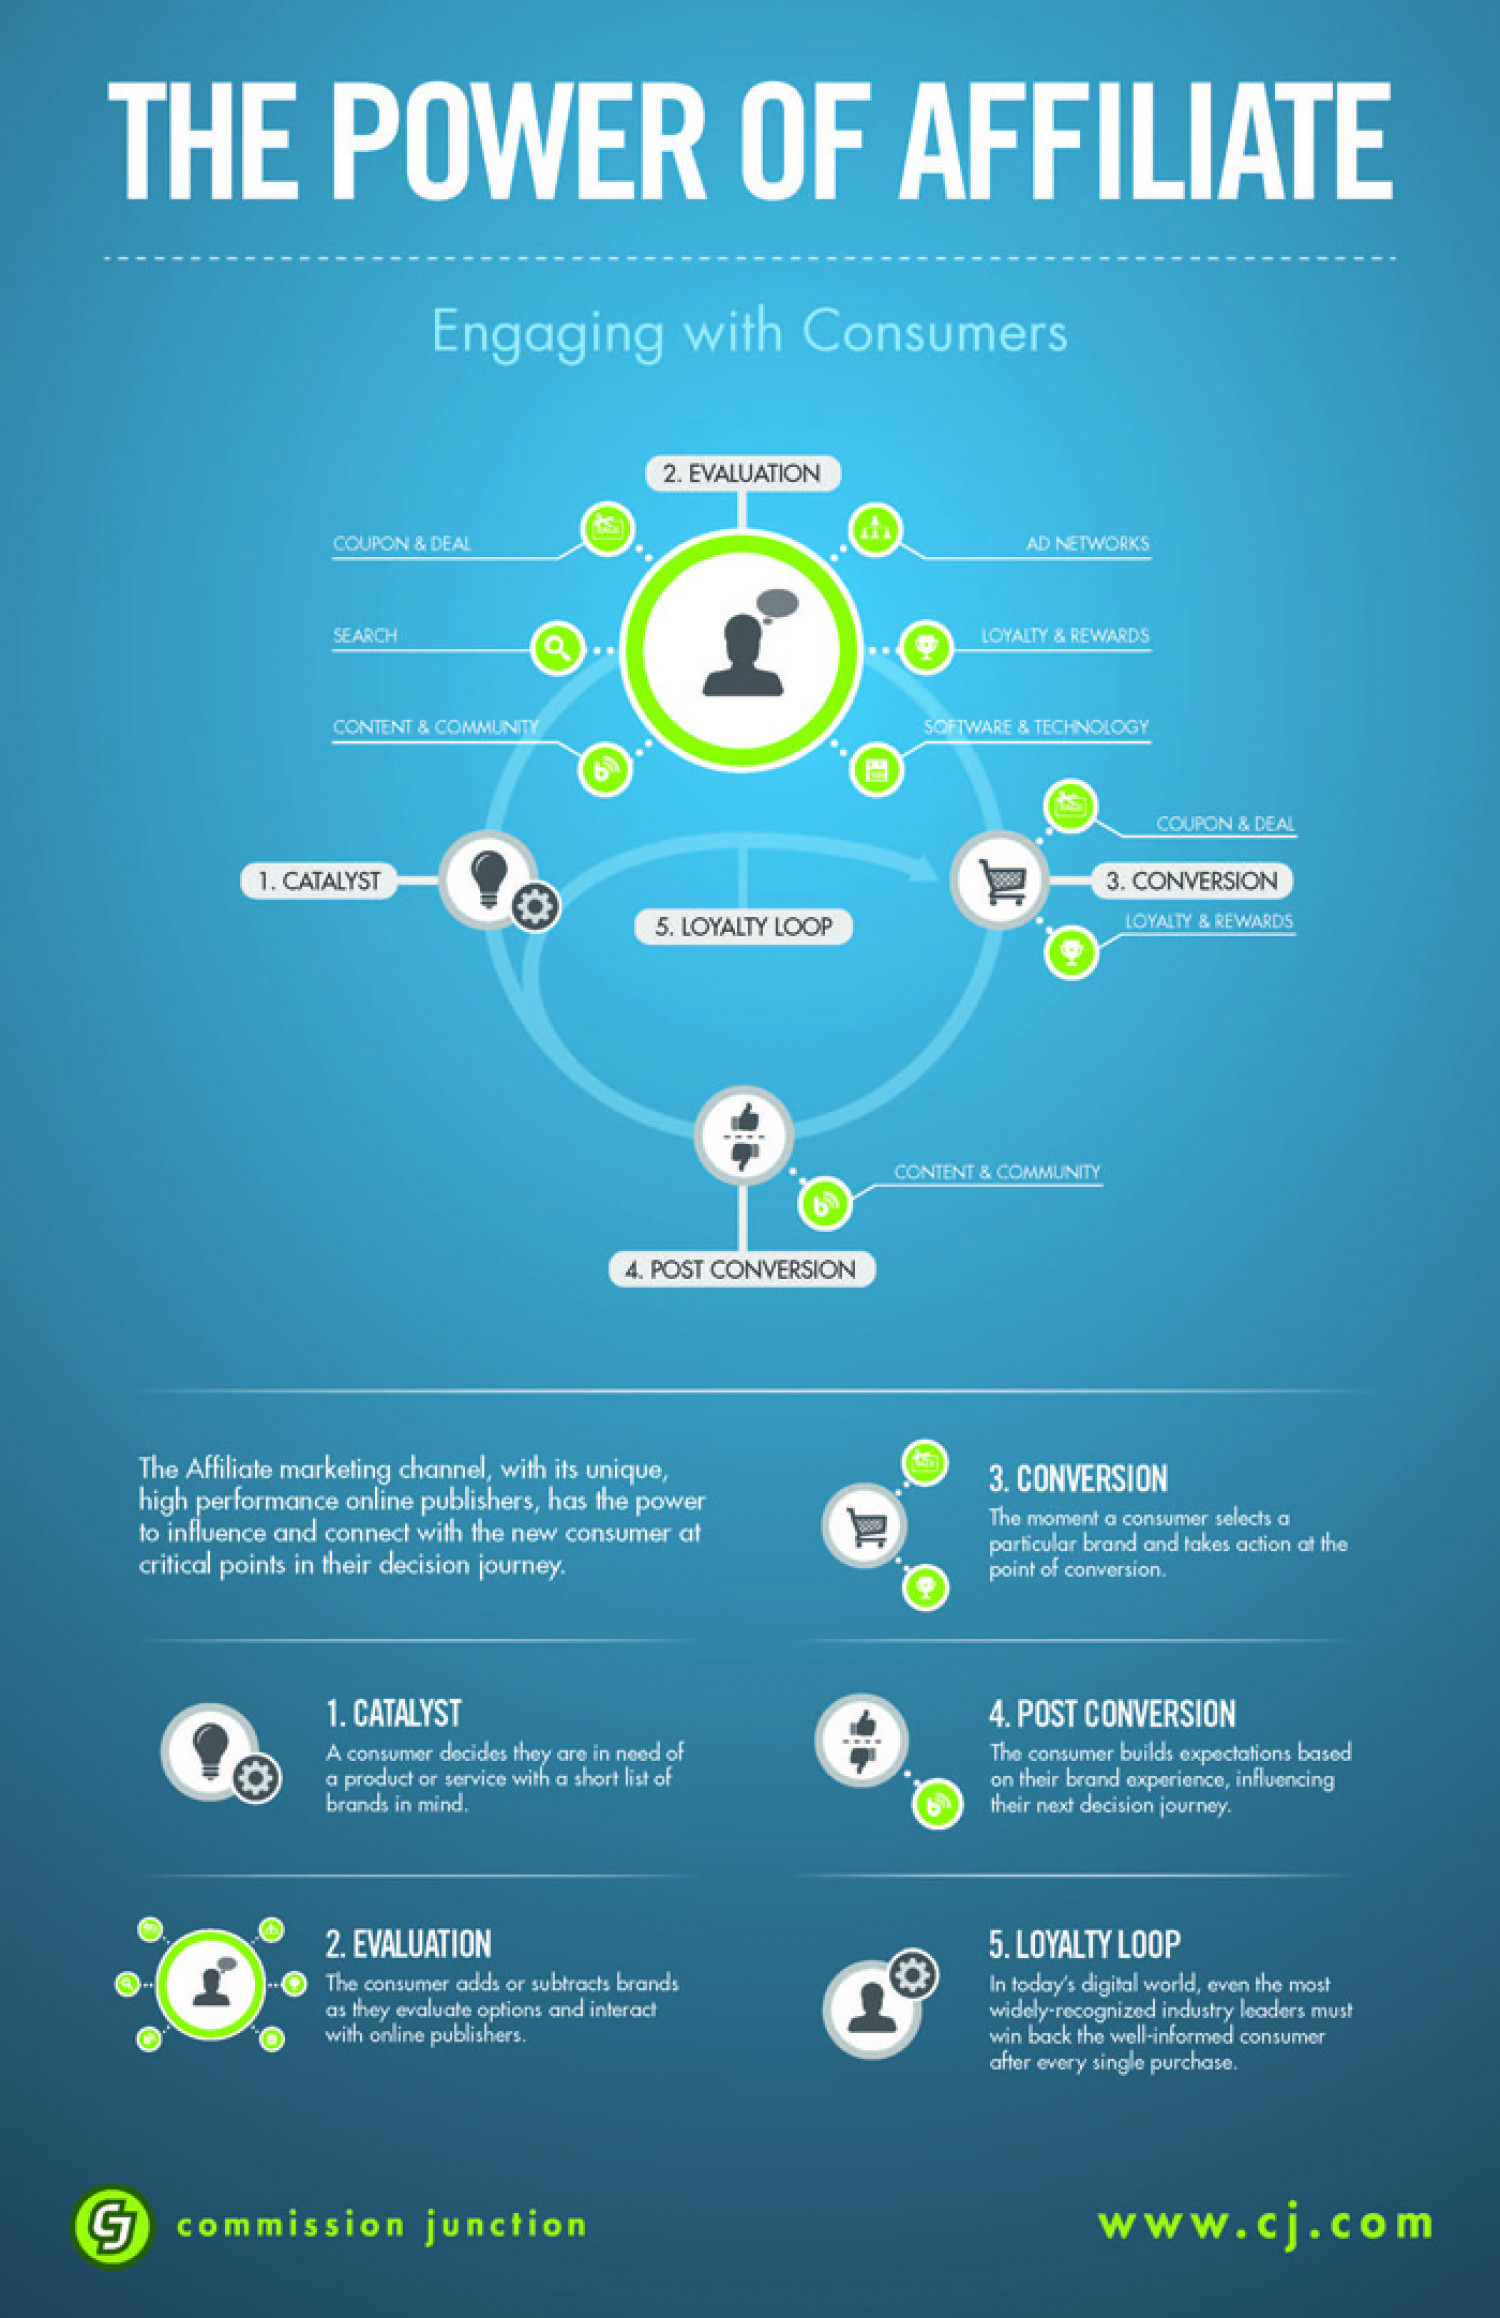 The Power of Affiliate Marketing Infographic